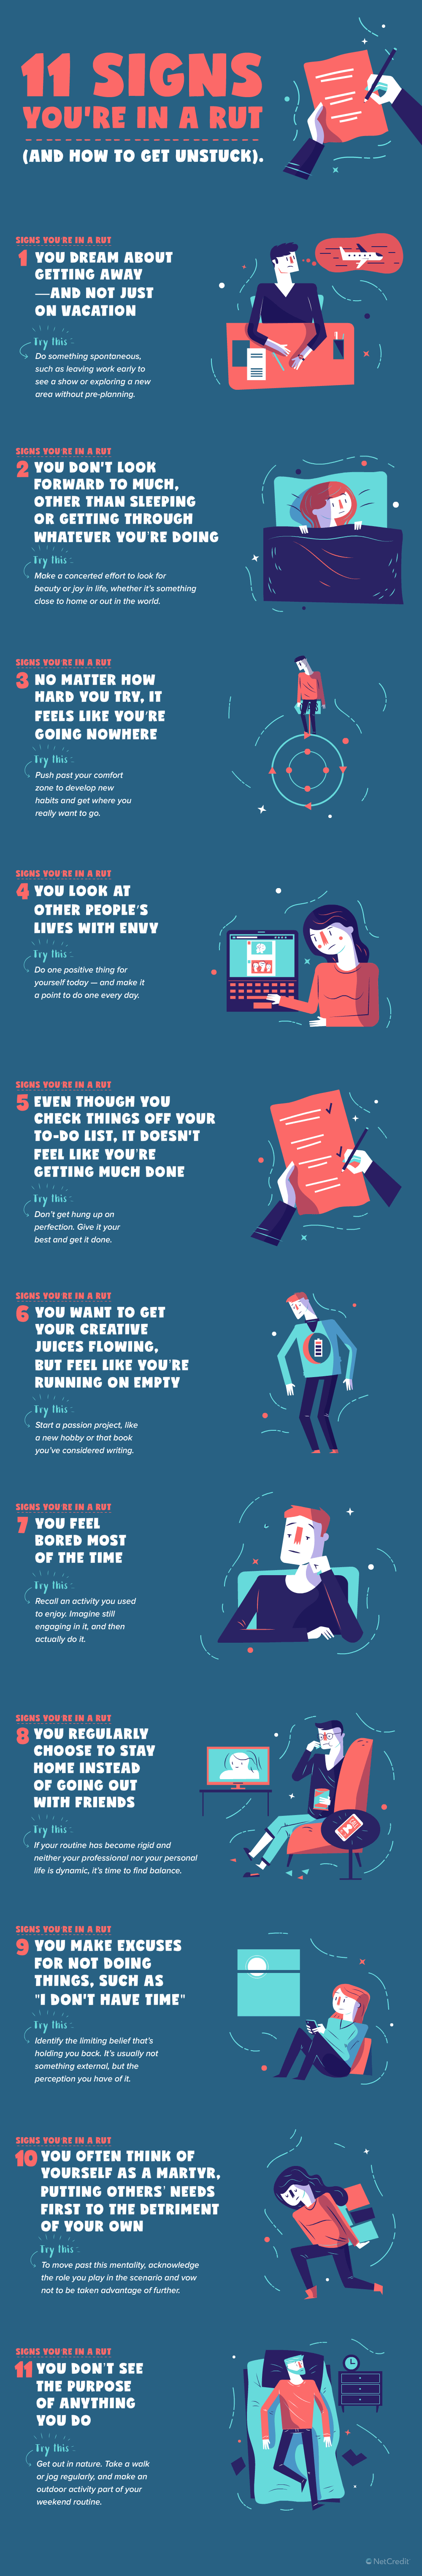 Get yourself out of a careers rut infographic